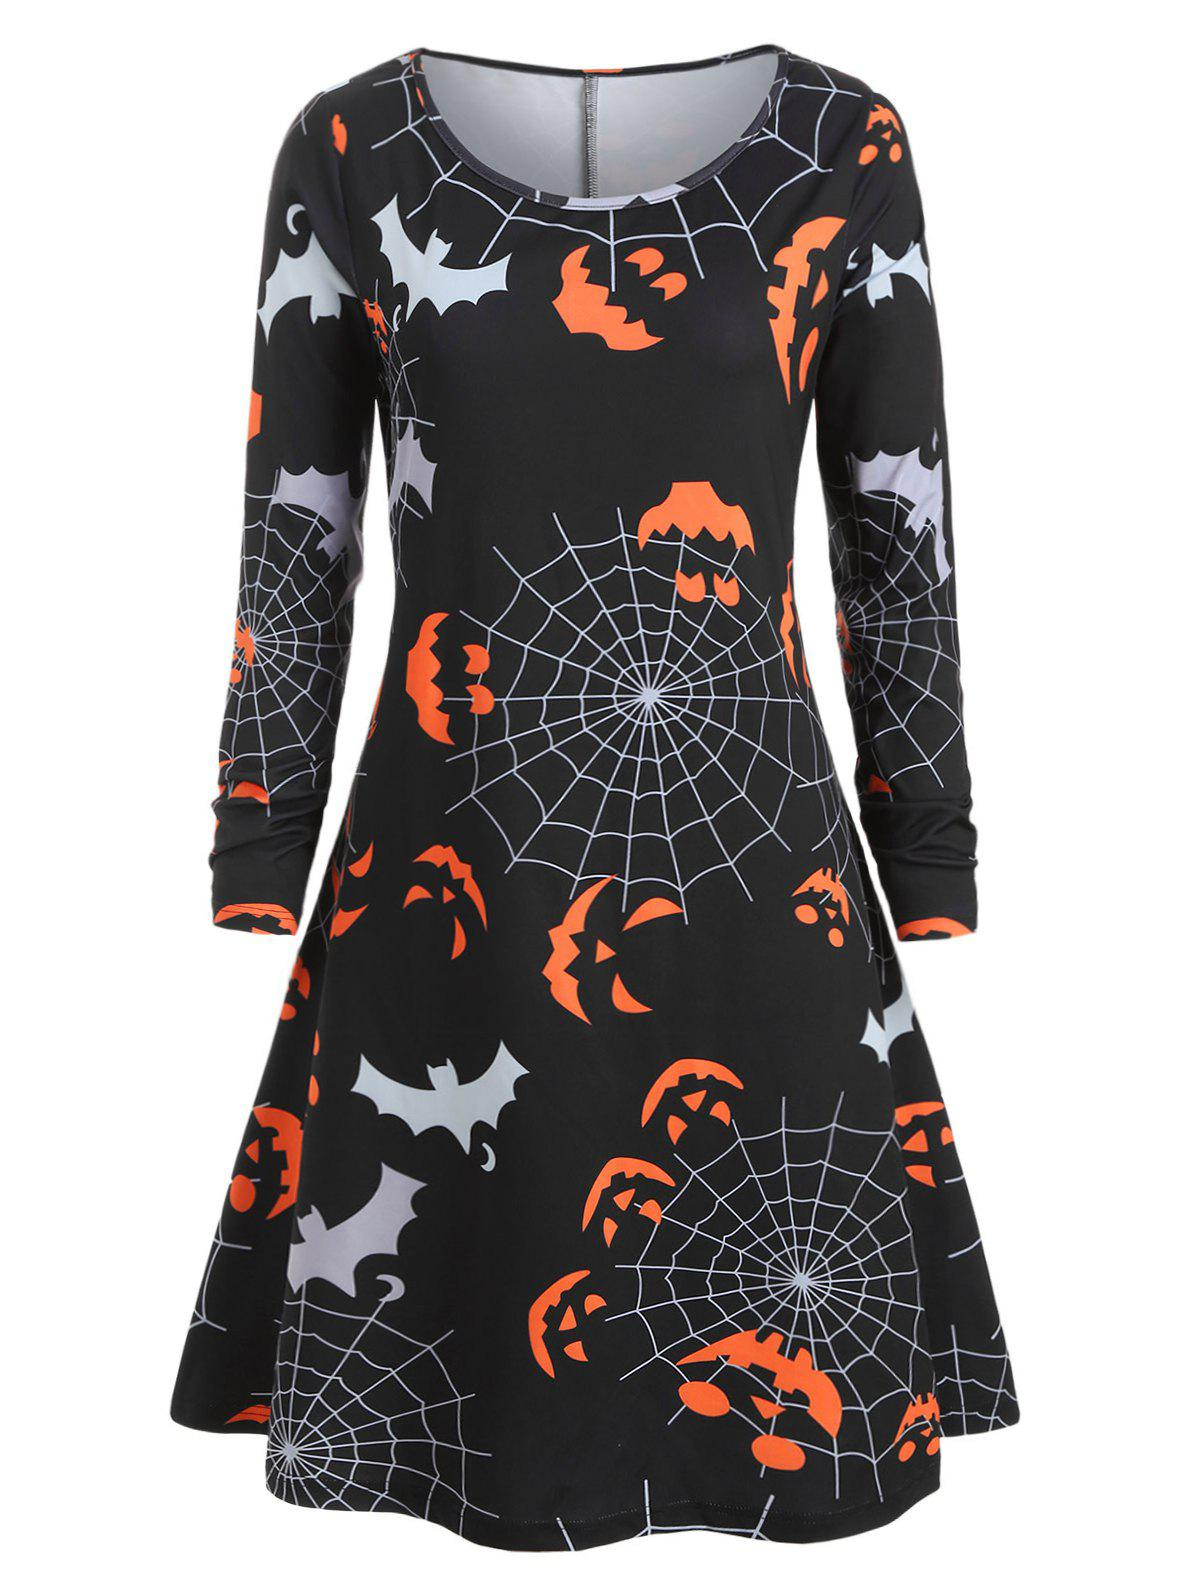 New Plus Size Halloween Pumpkin Spider Web Print Swing Dress